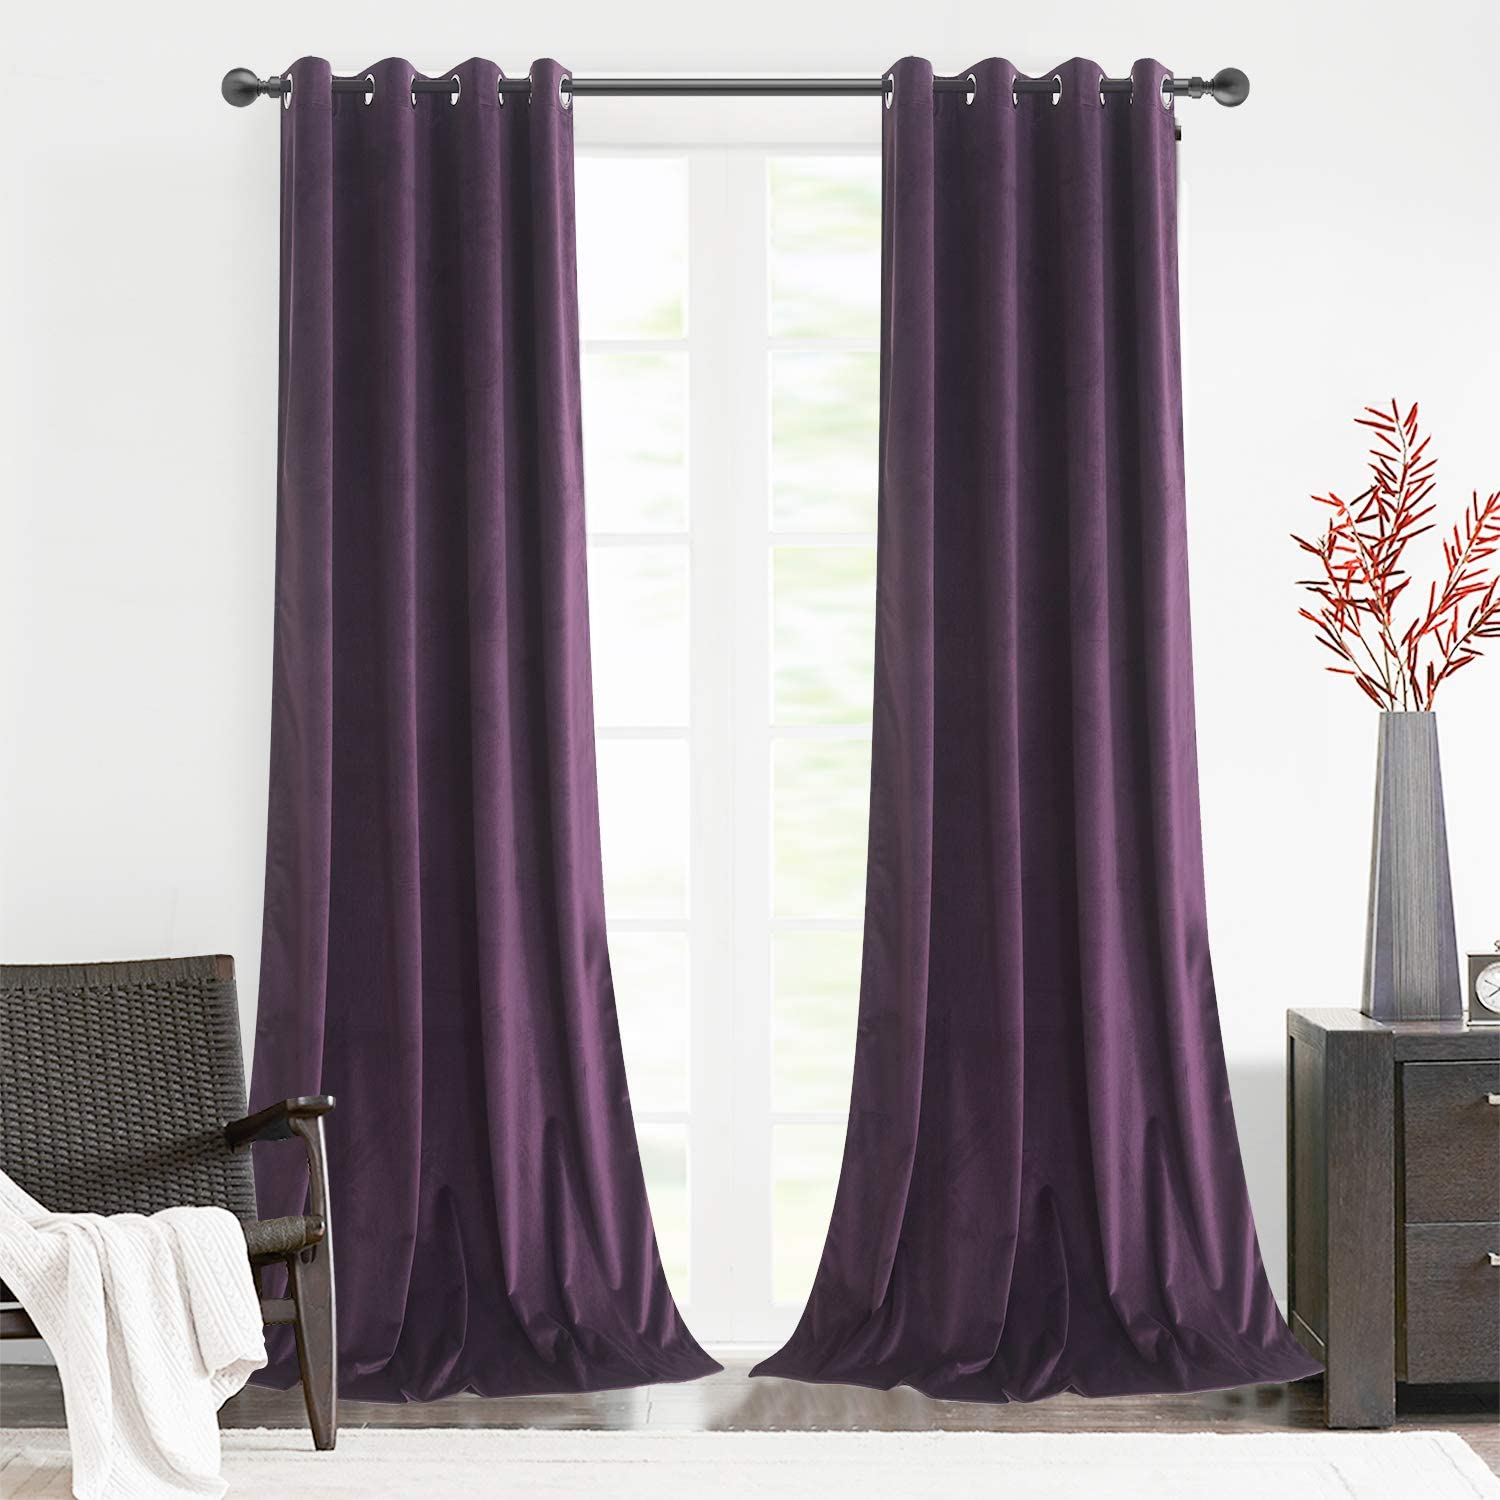 Roslynwood Special sale item Home SEAL limited product Office Velvet Insulated Luxury Thermal Curtains